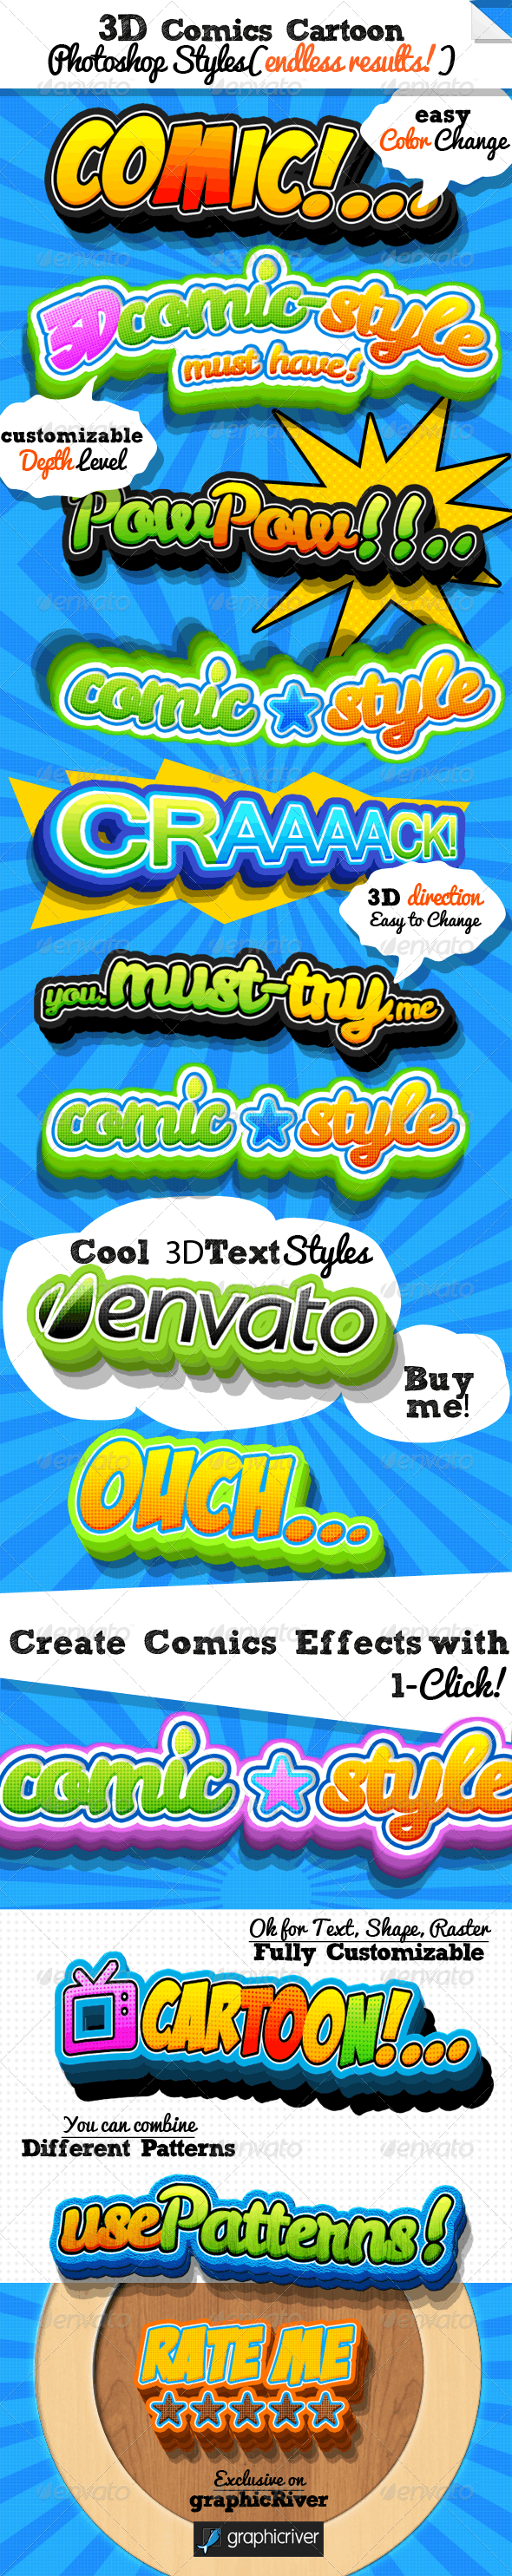 3D Comic Book and Cartoon Photoshop Styles - Text Effects Styles